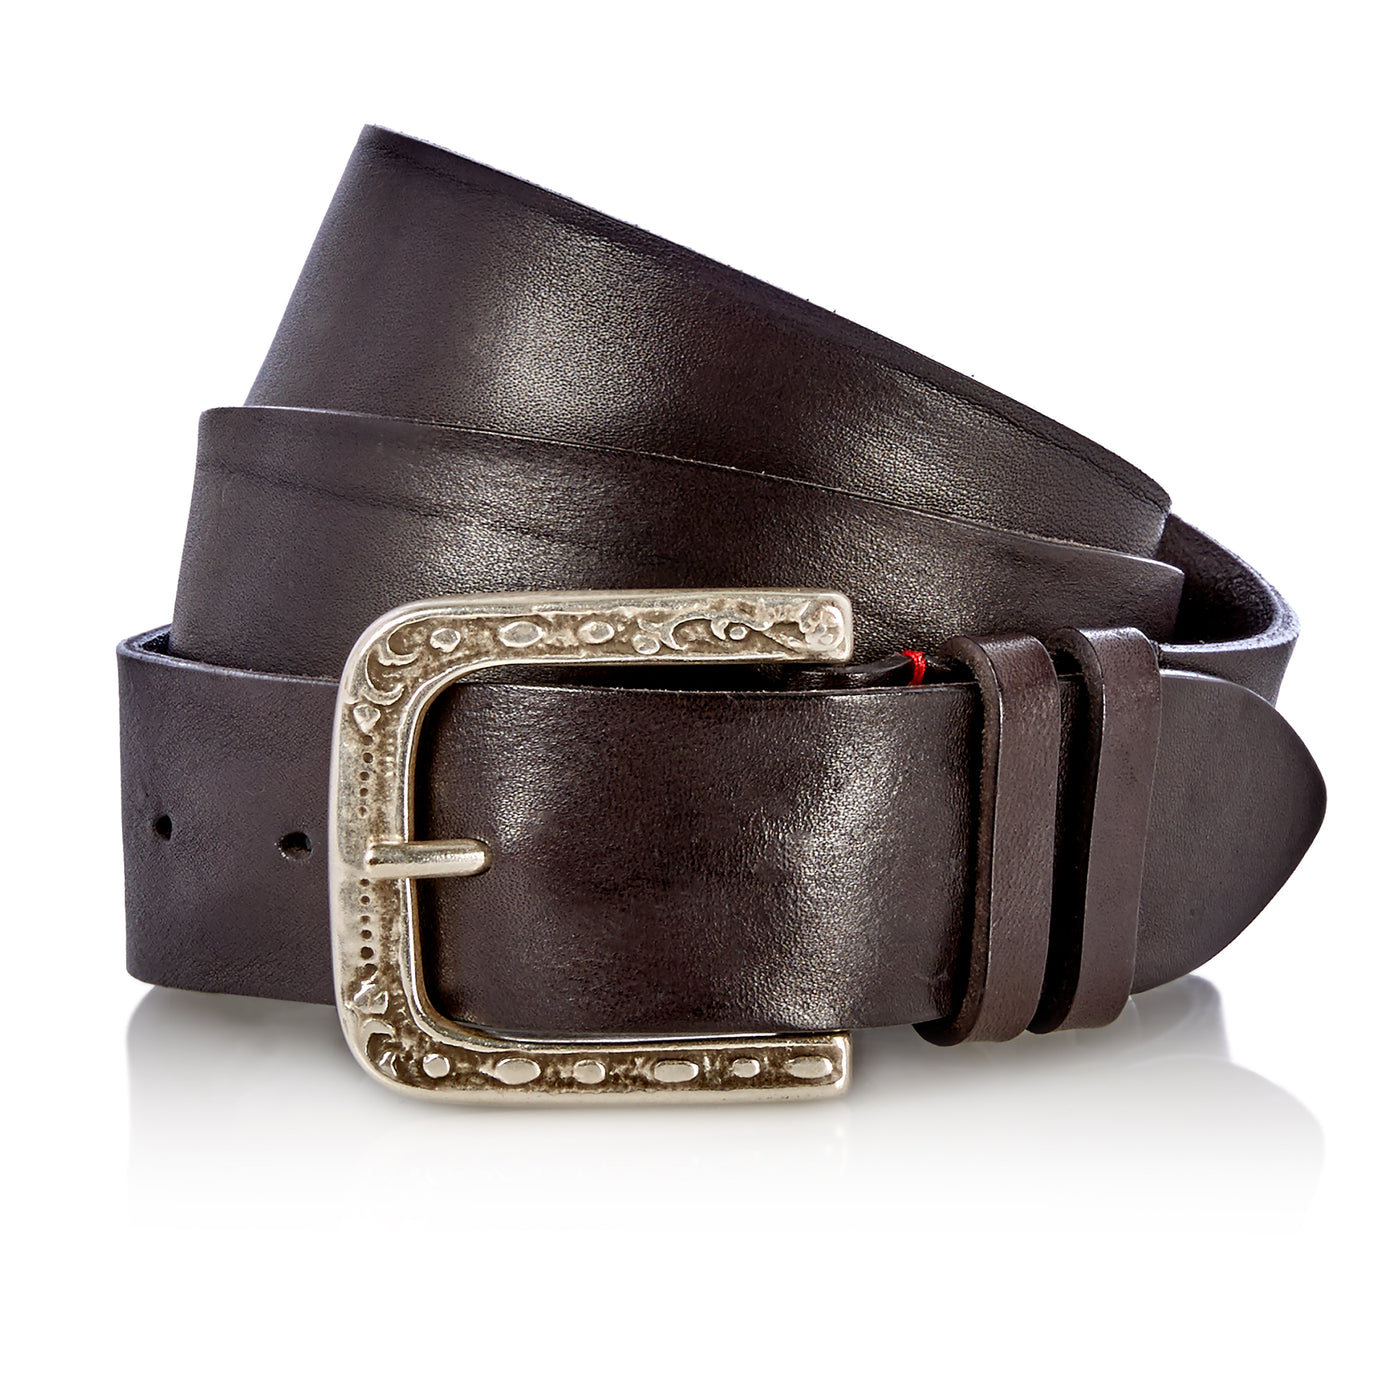 Even - Handcrafted Italian Belt / Black